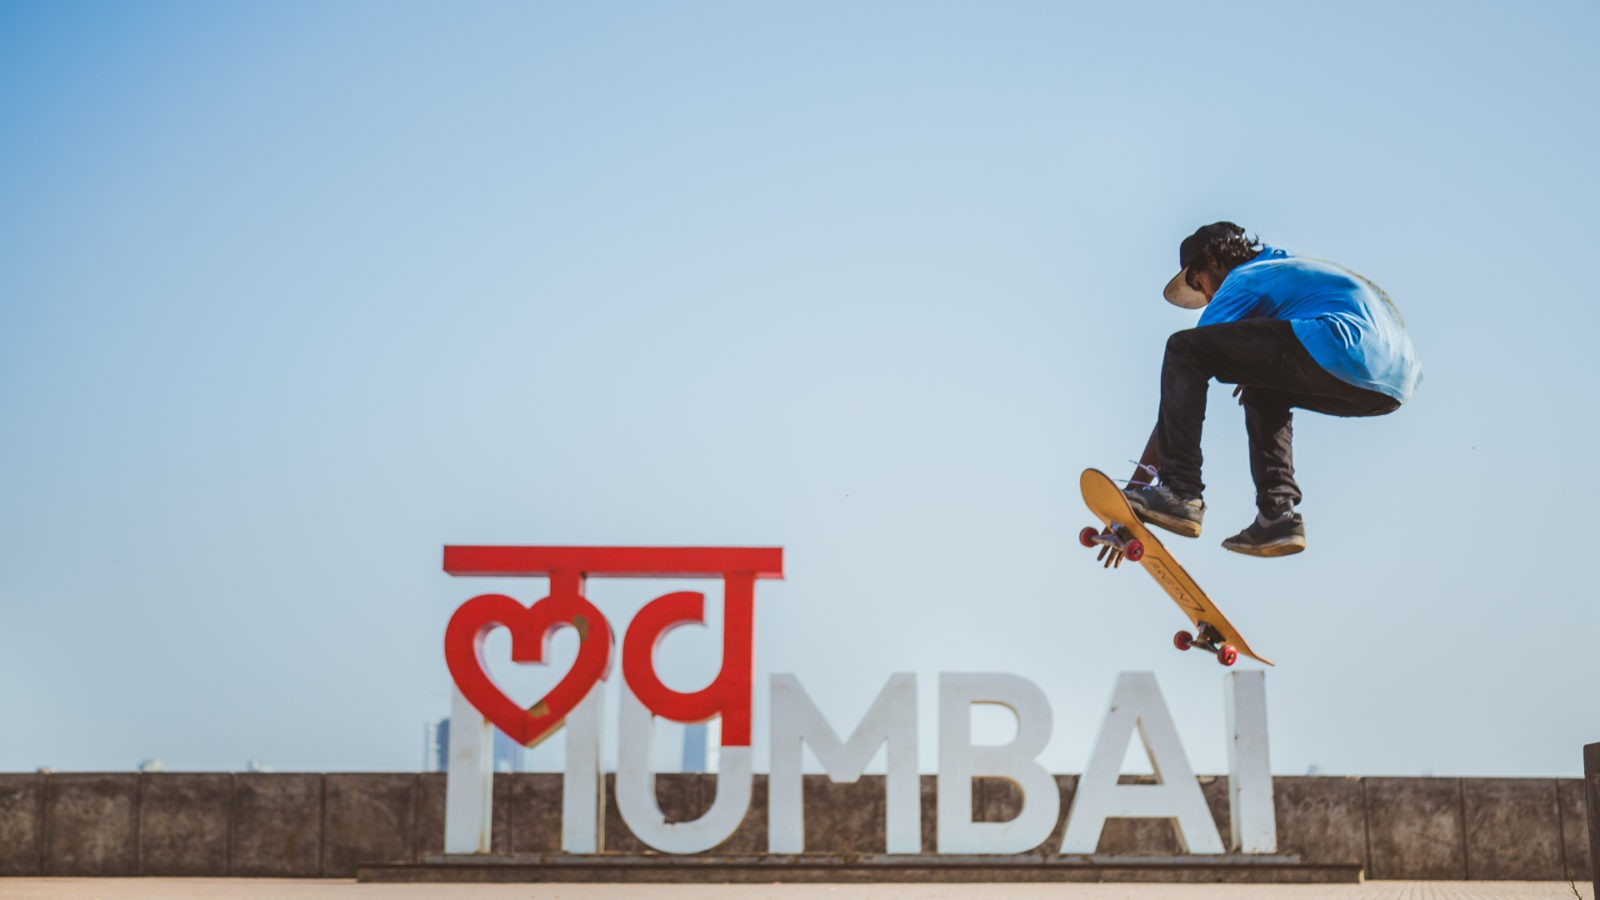 Meet The Humans Of Skateboarding In India